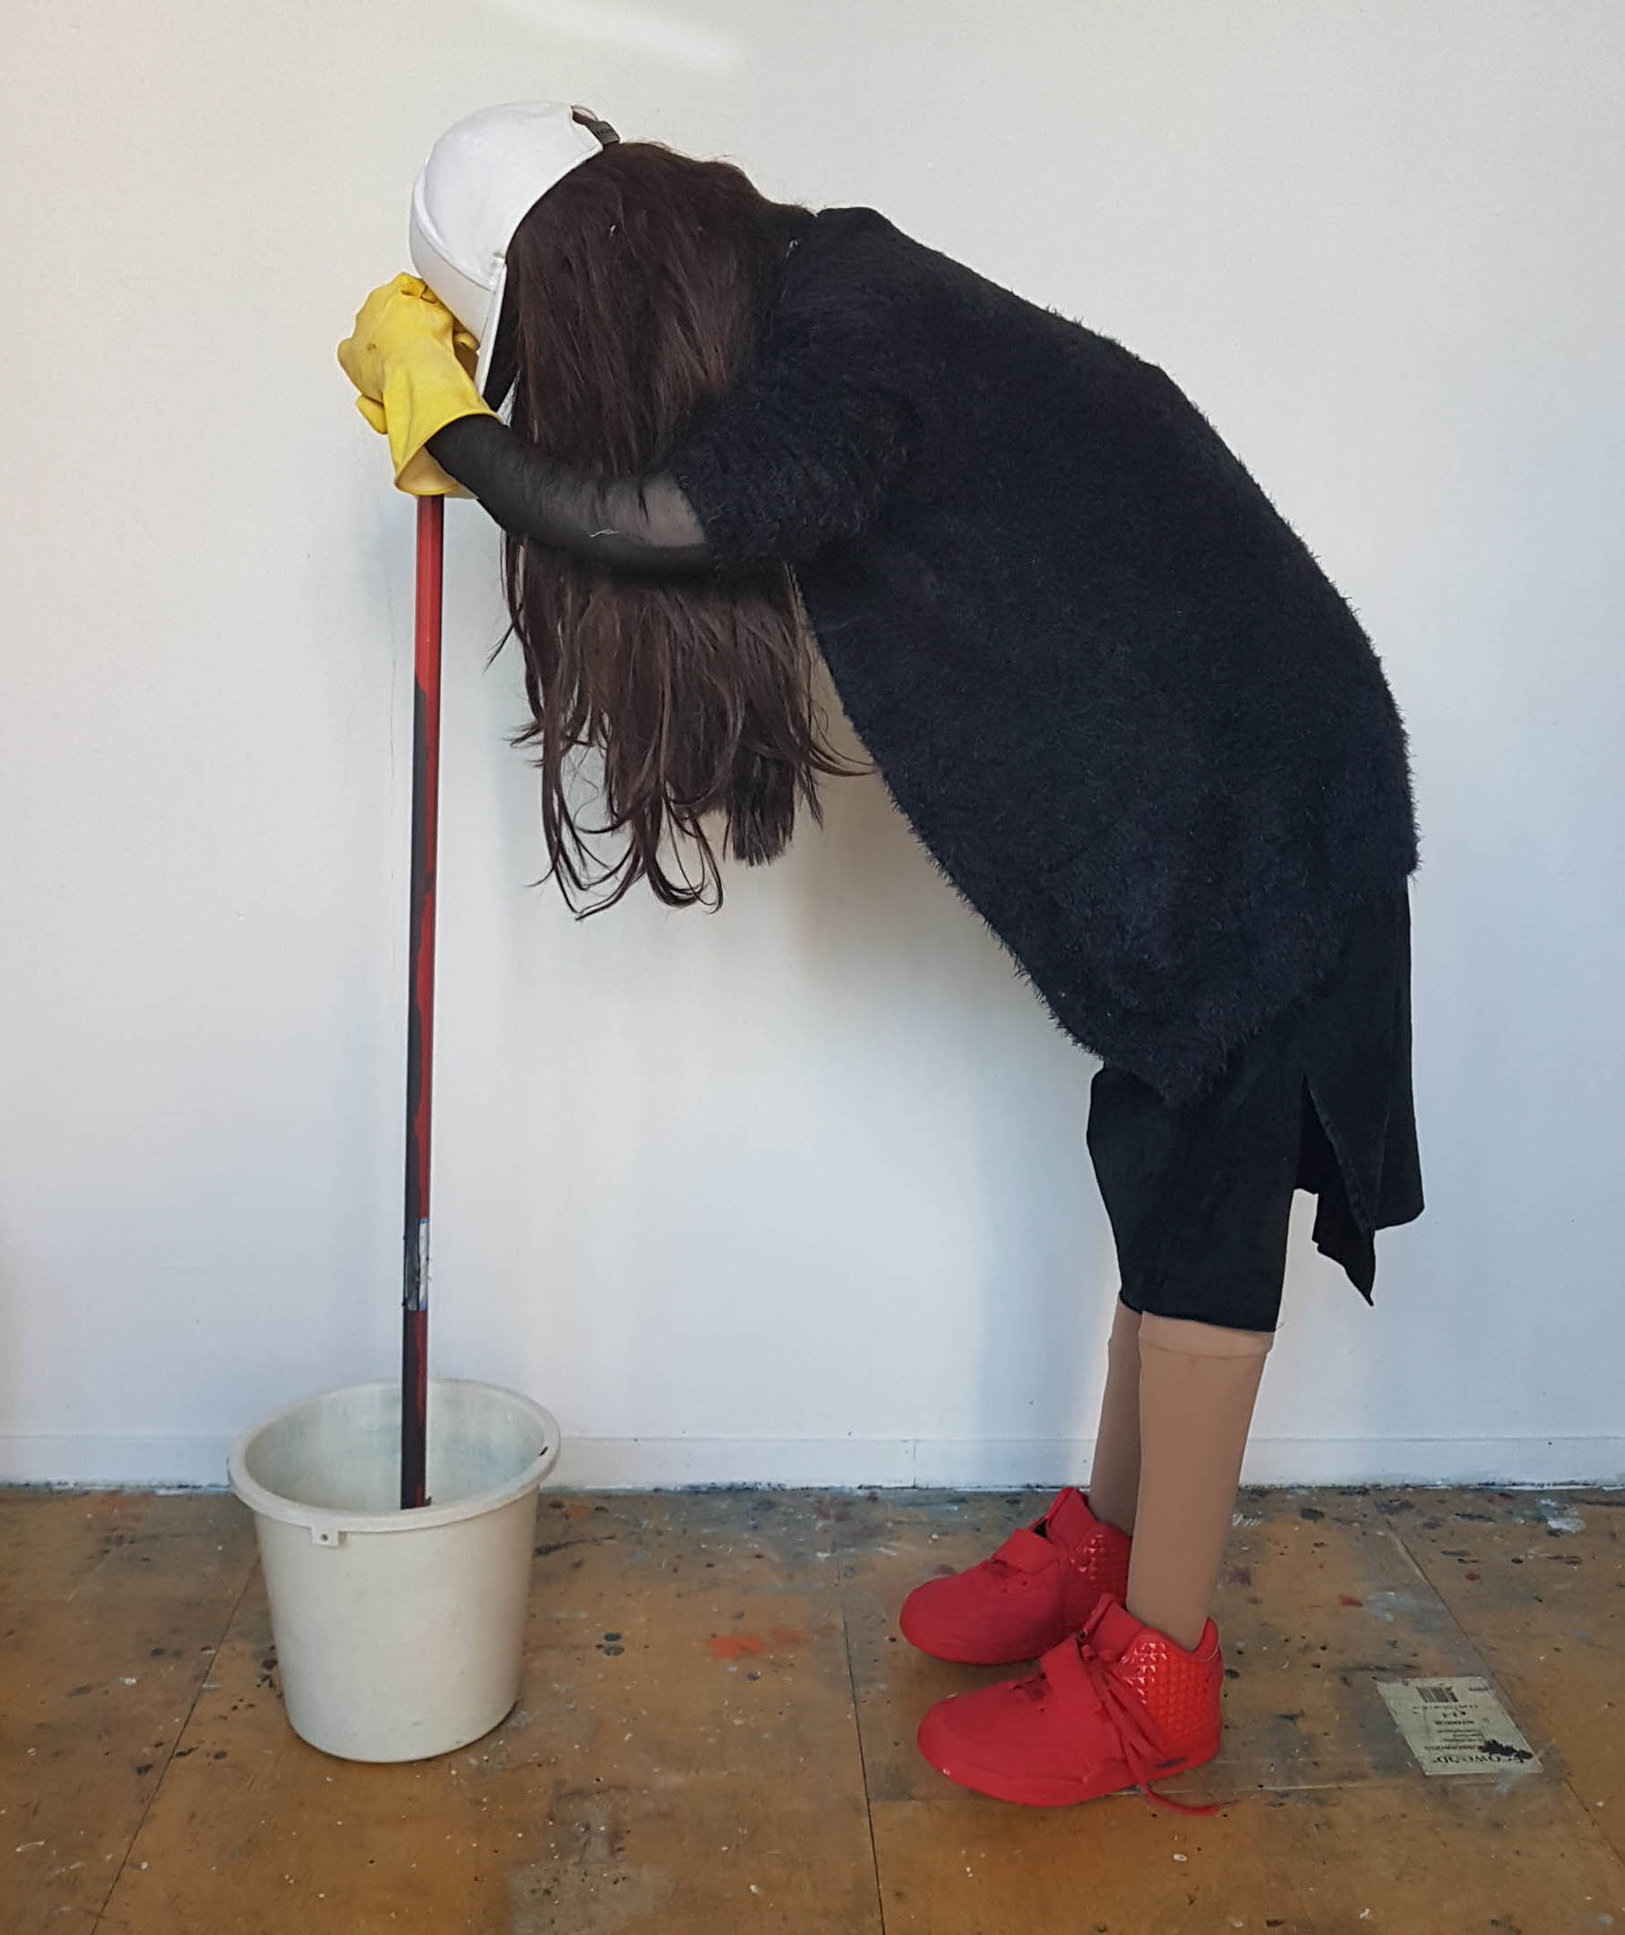 Kevin Power, Untitled (Office cleaner - Milan-Amsterdam), 2018